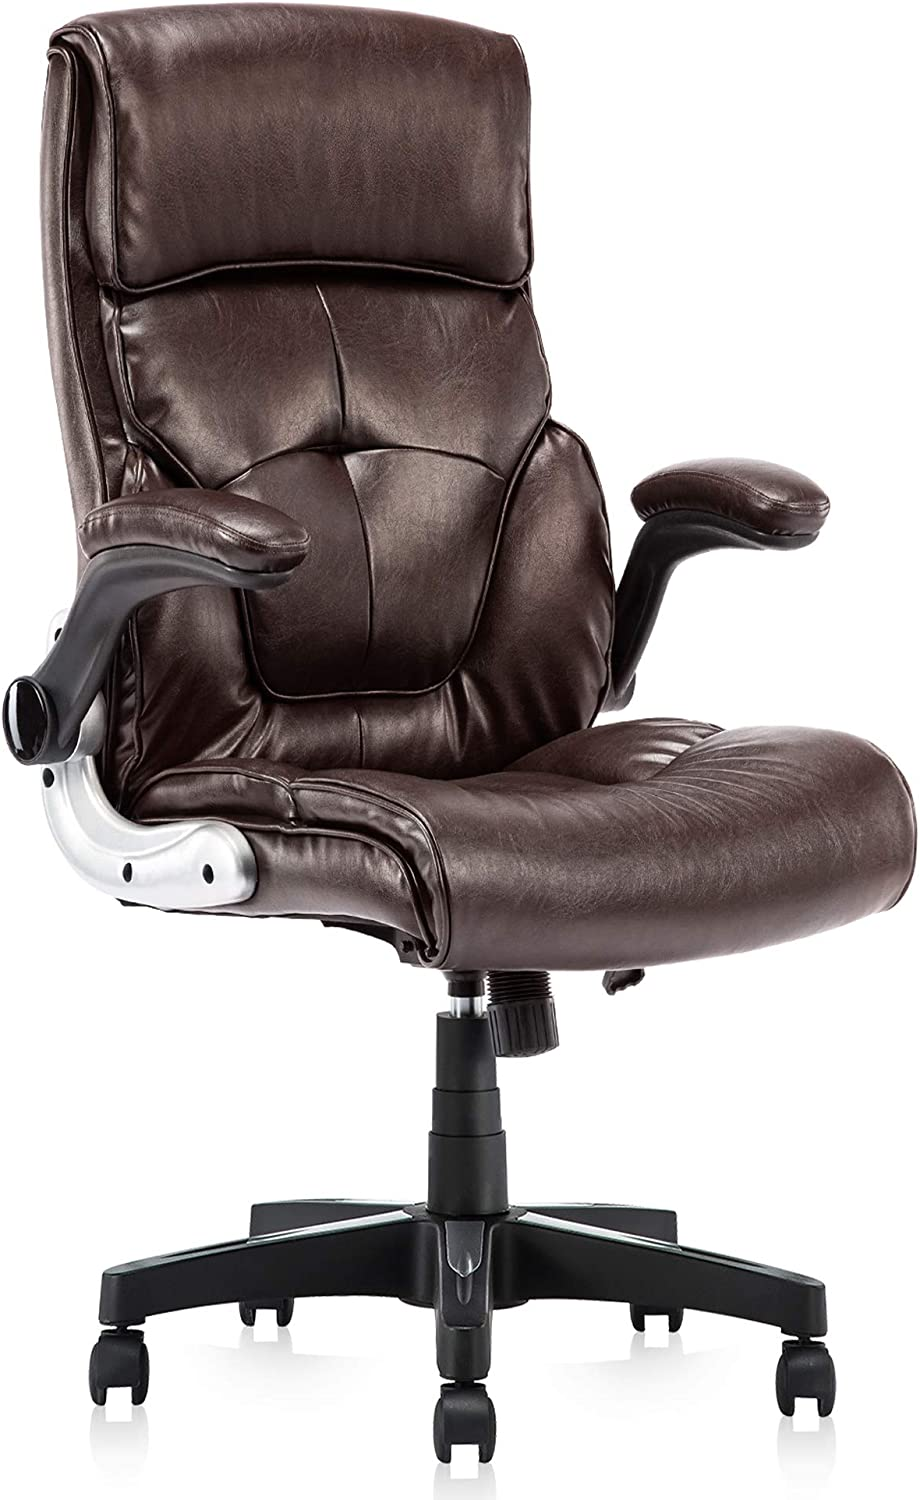 High Back Leather Office Chair – Adjustable Tilt Angle and Flip-up Arms Executive Computer Desk Chair, Thick Padding for Comfort and Ergonomic Design for Lumbar Support, Brown